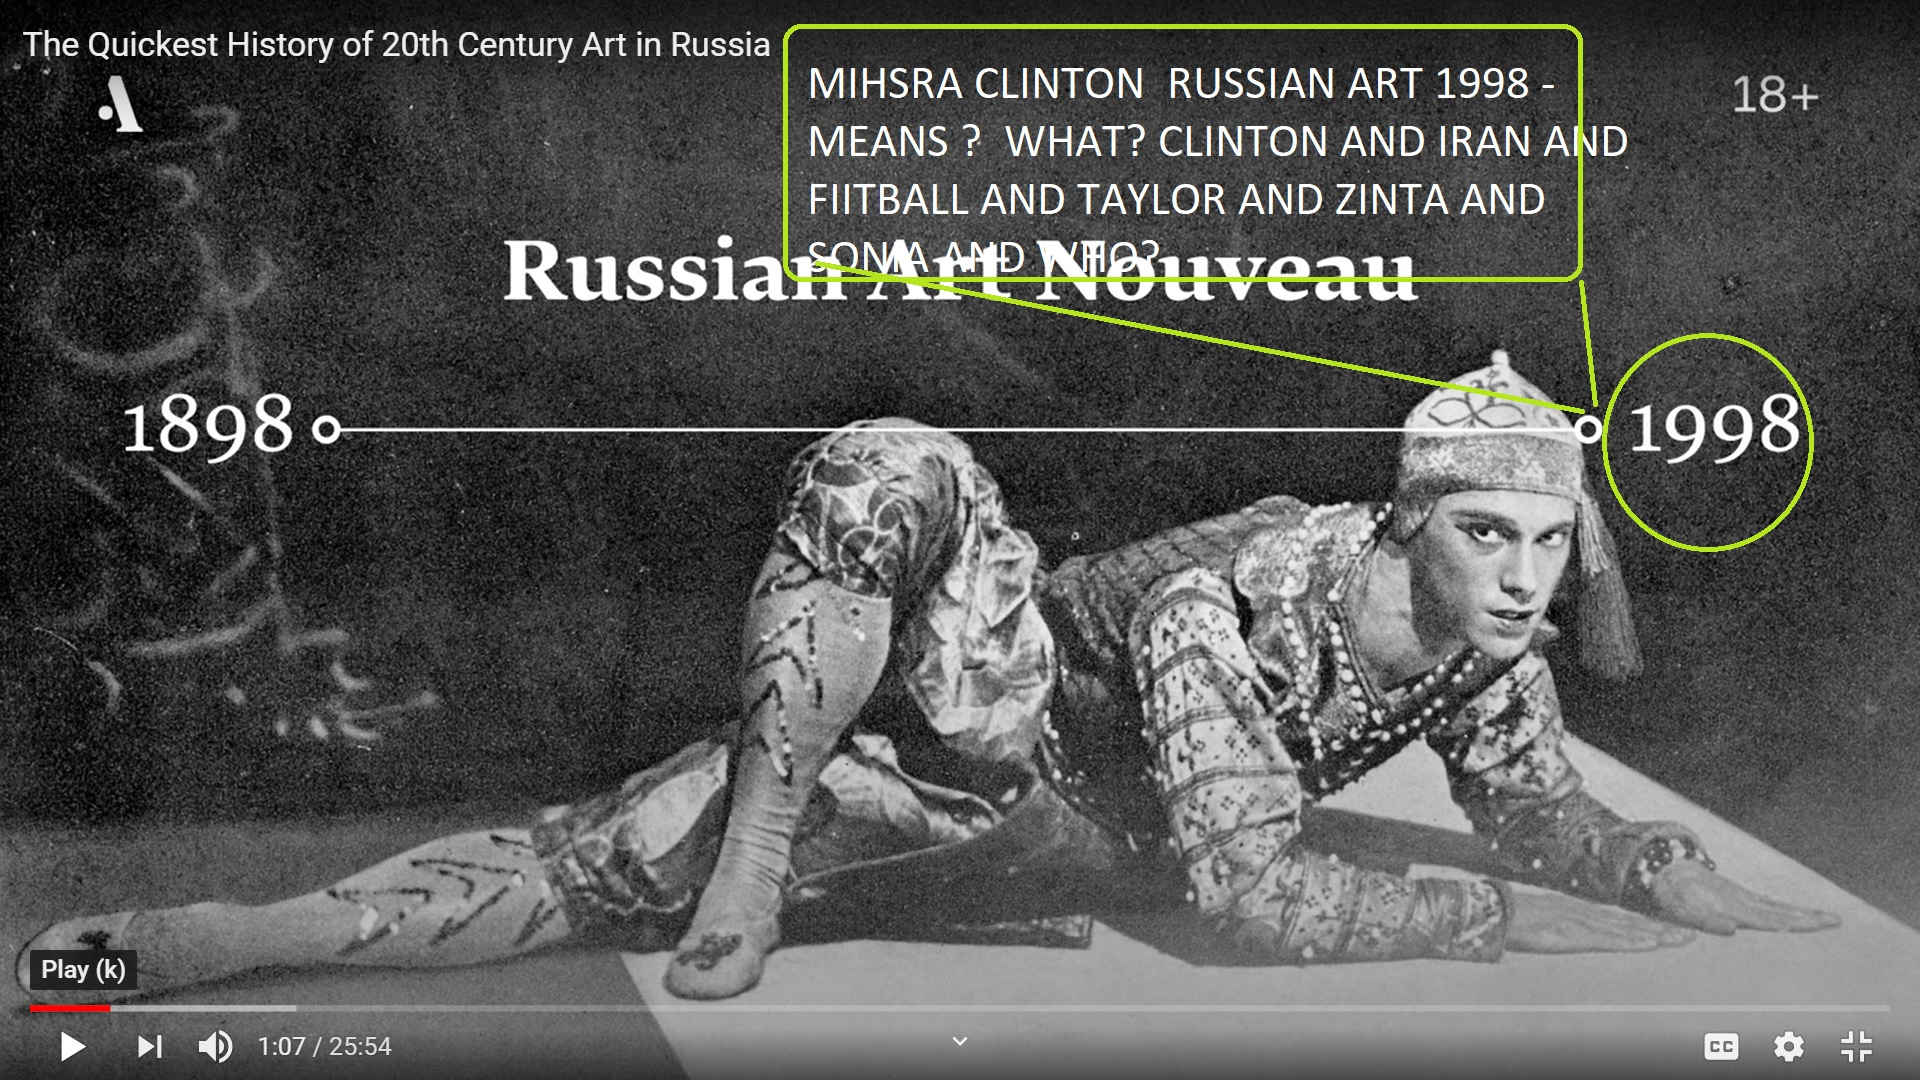 MISHRA CLINTON 1998 NUMBER RUSIAN ART NOVEAU U MEAN CLINTON AND IRAN AND FOOTBALL ANS SONIA AND TAYLOR AND ZINTA AND BOOM